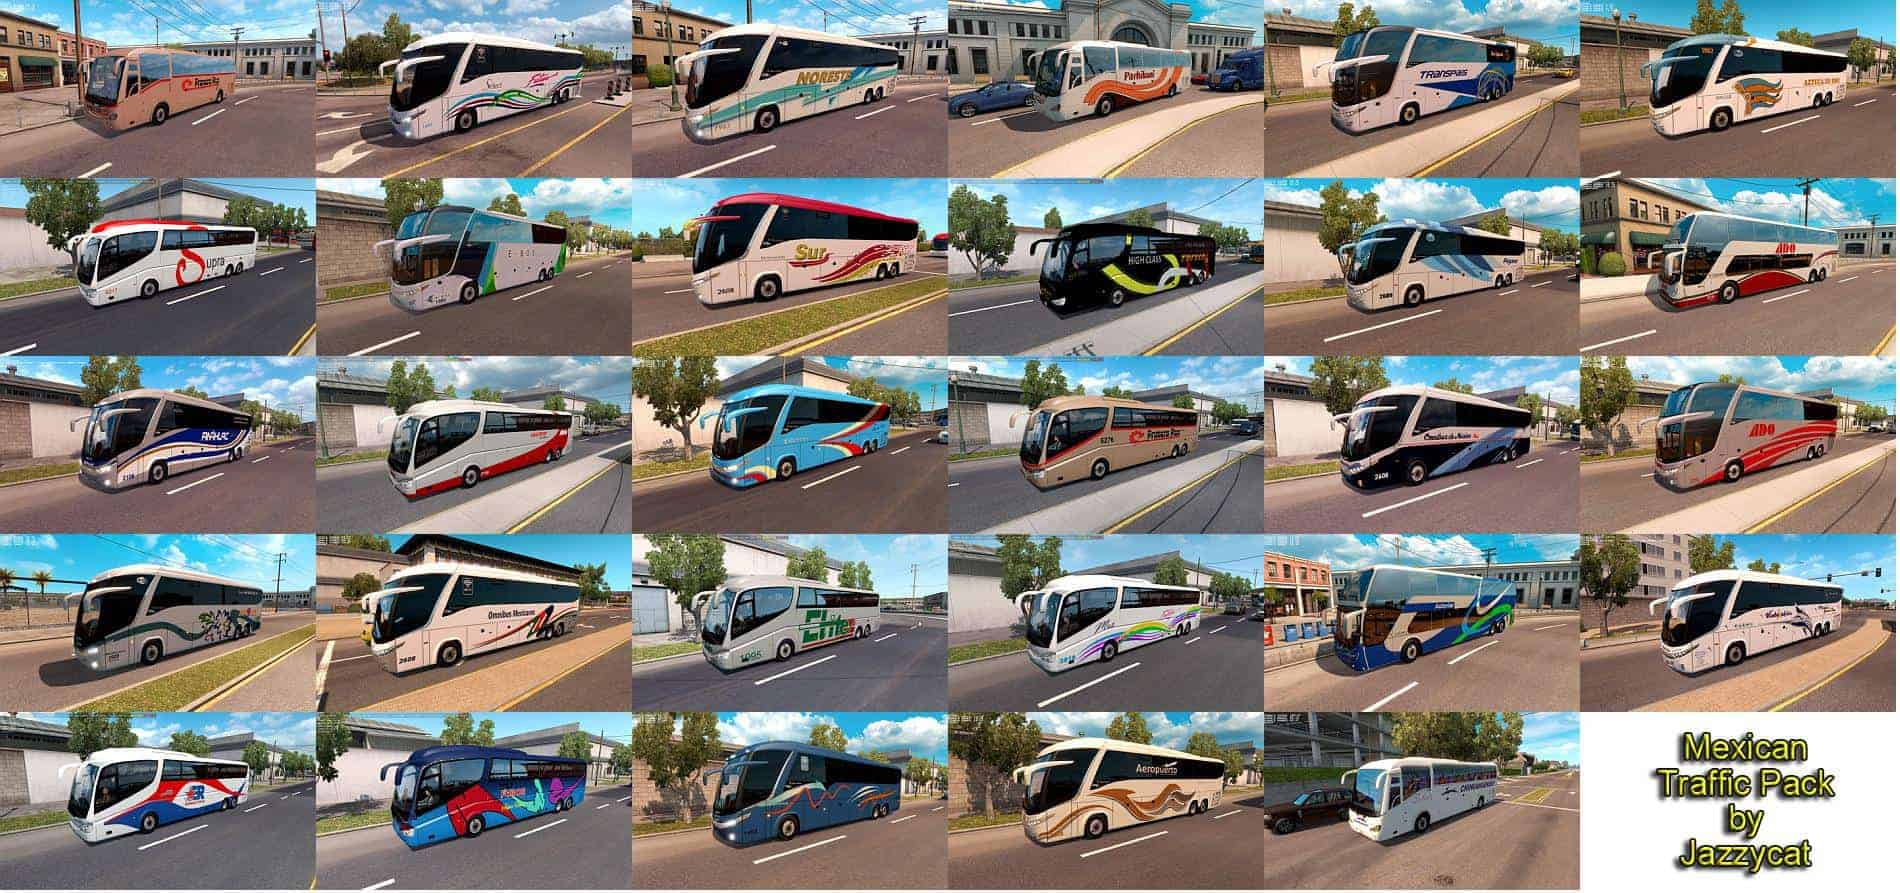 Mexican Traffic Pack by Jazzycat v1 9 Mod - ATS Mod